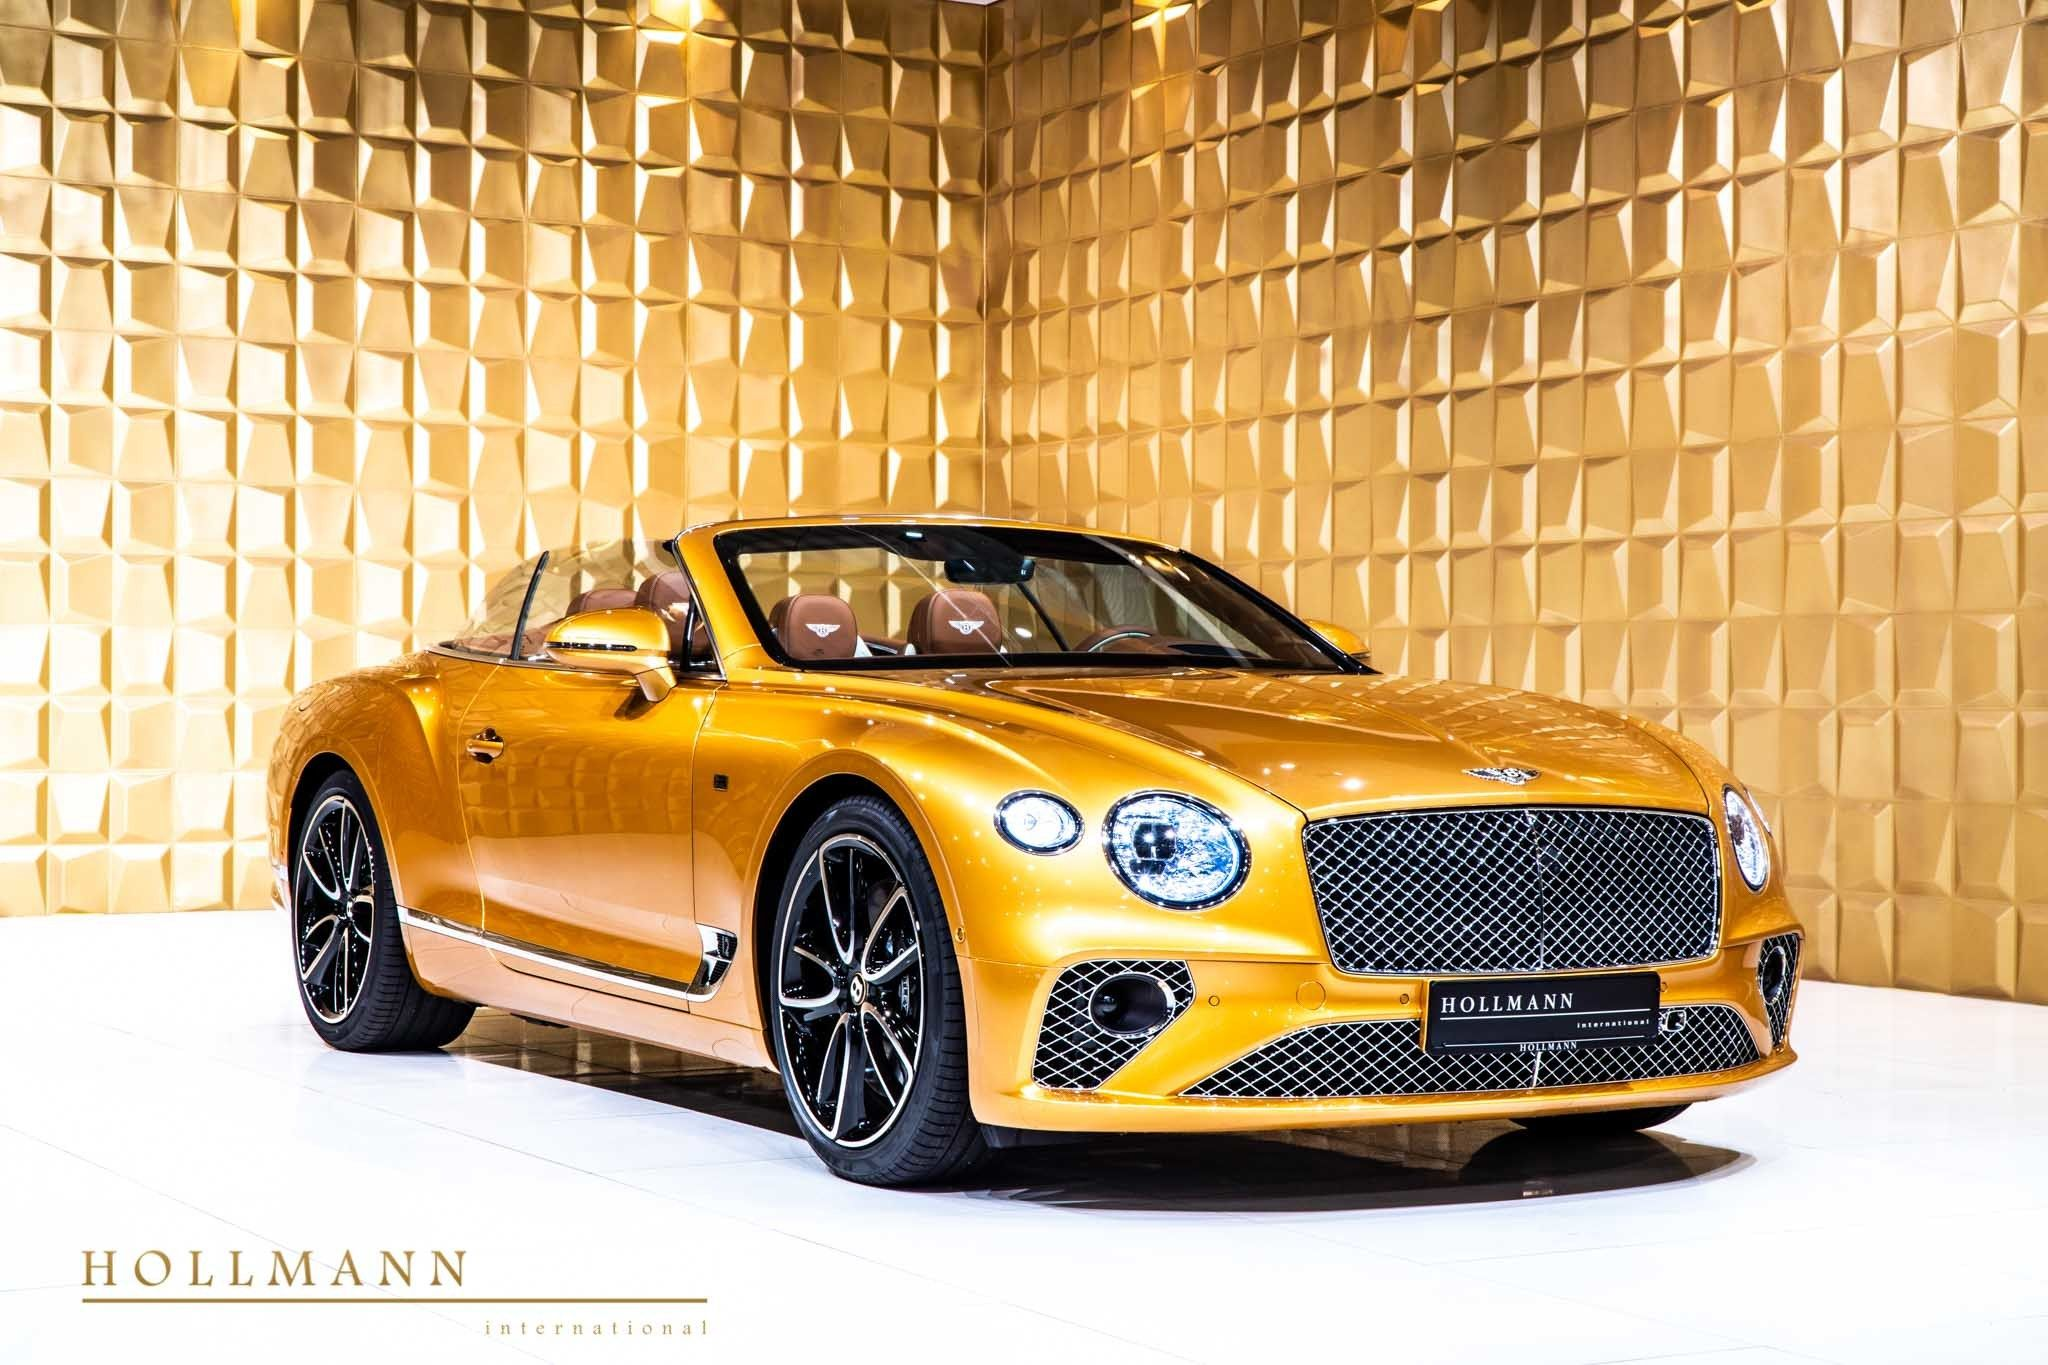 Bentley Continental Gtc First Edition Mansory Hollmann Luxury Pulse Cars Germany For Sale On Luxurypulse In 2020 Bentley Continental Bentley Super Luxury Cars